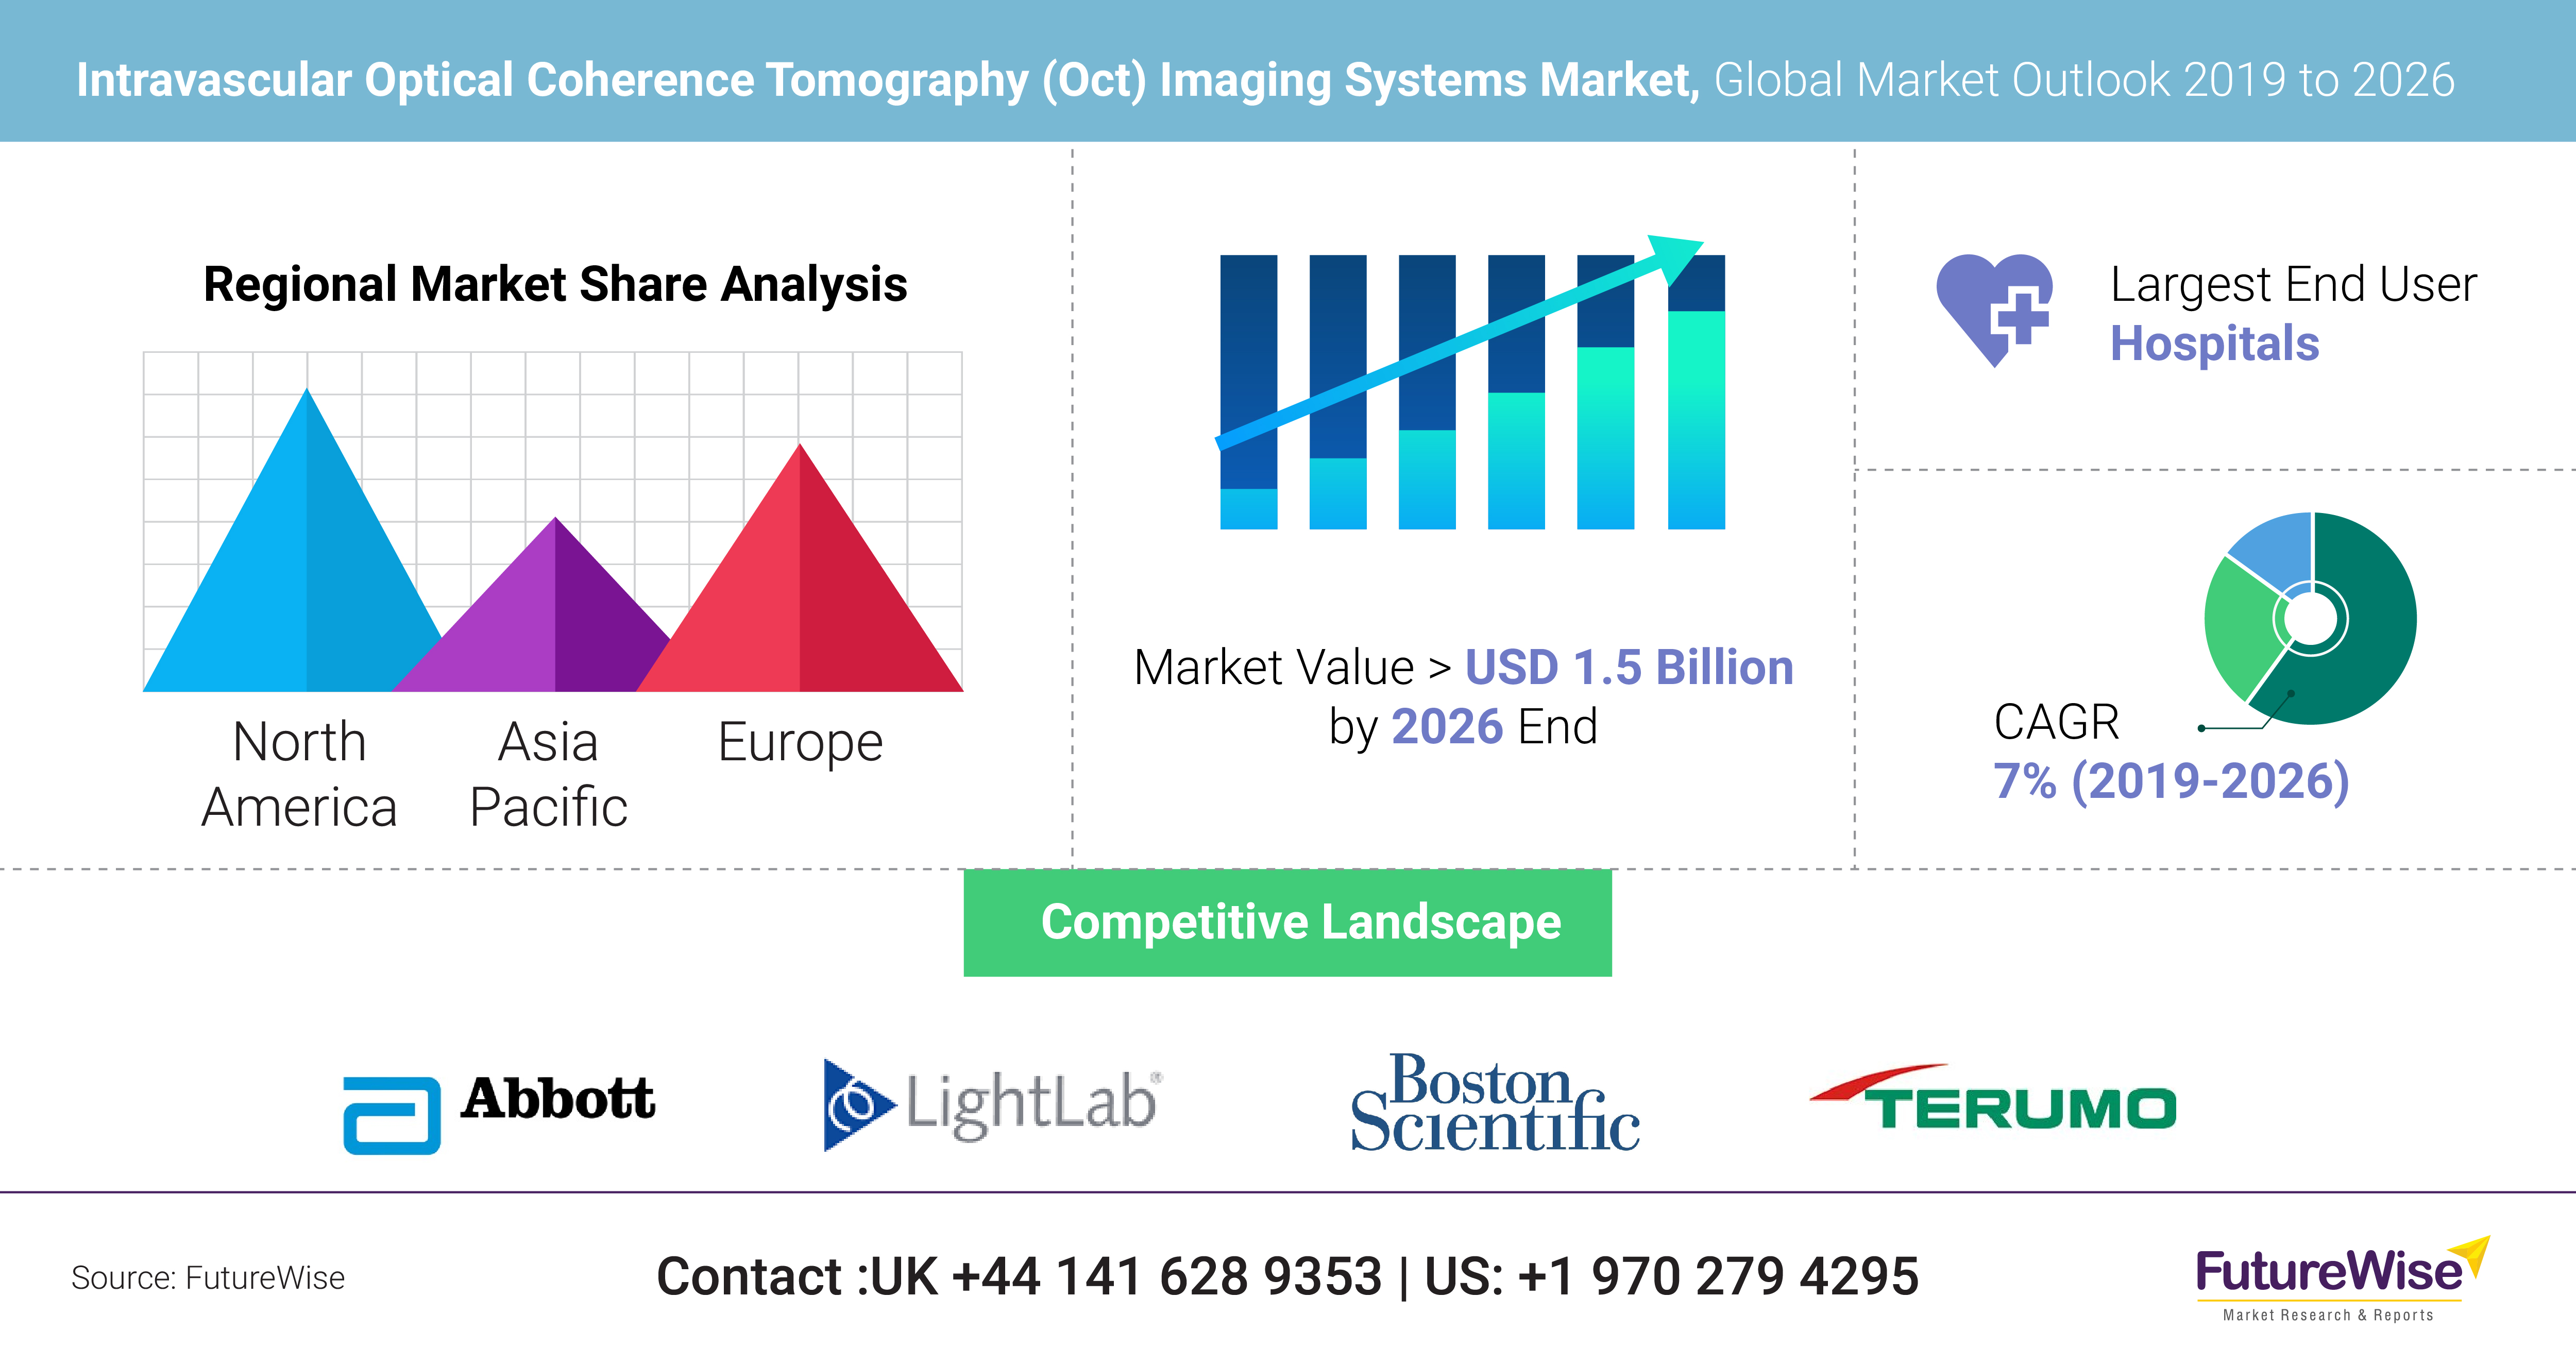 Intravascular Optical Coherence Tomography (Oct) Imaging Systems Market